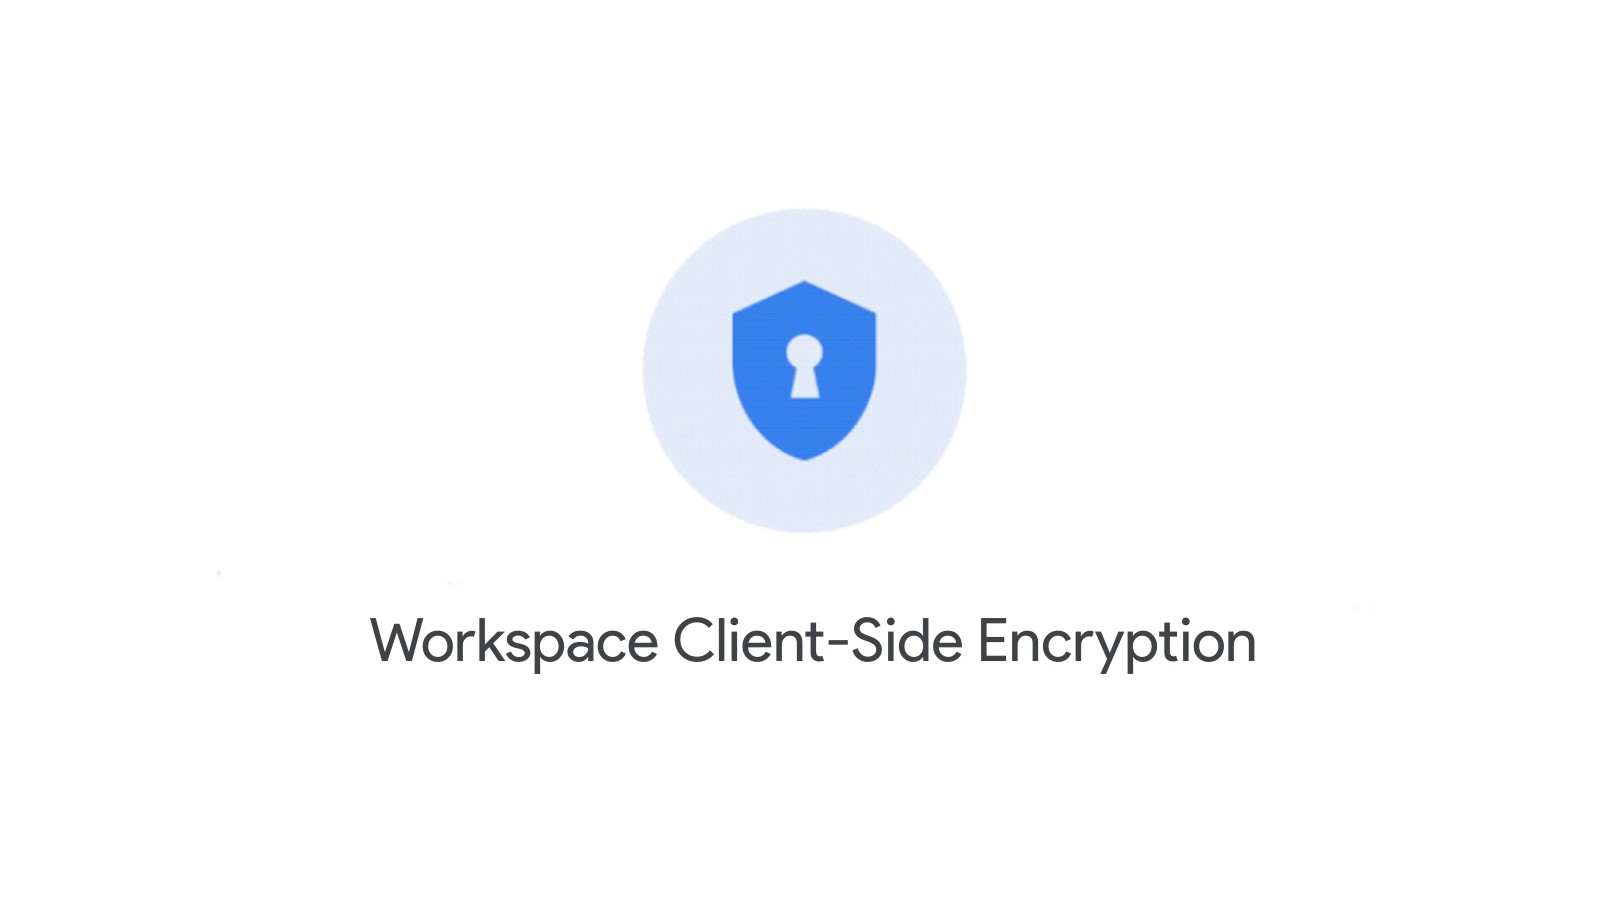 Workspace client-side encryption gives you the  keys to your own privacy and data security